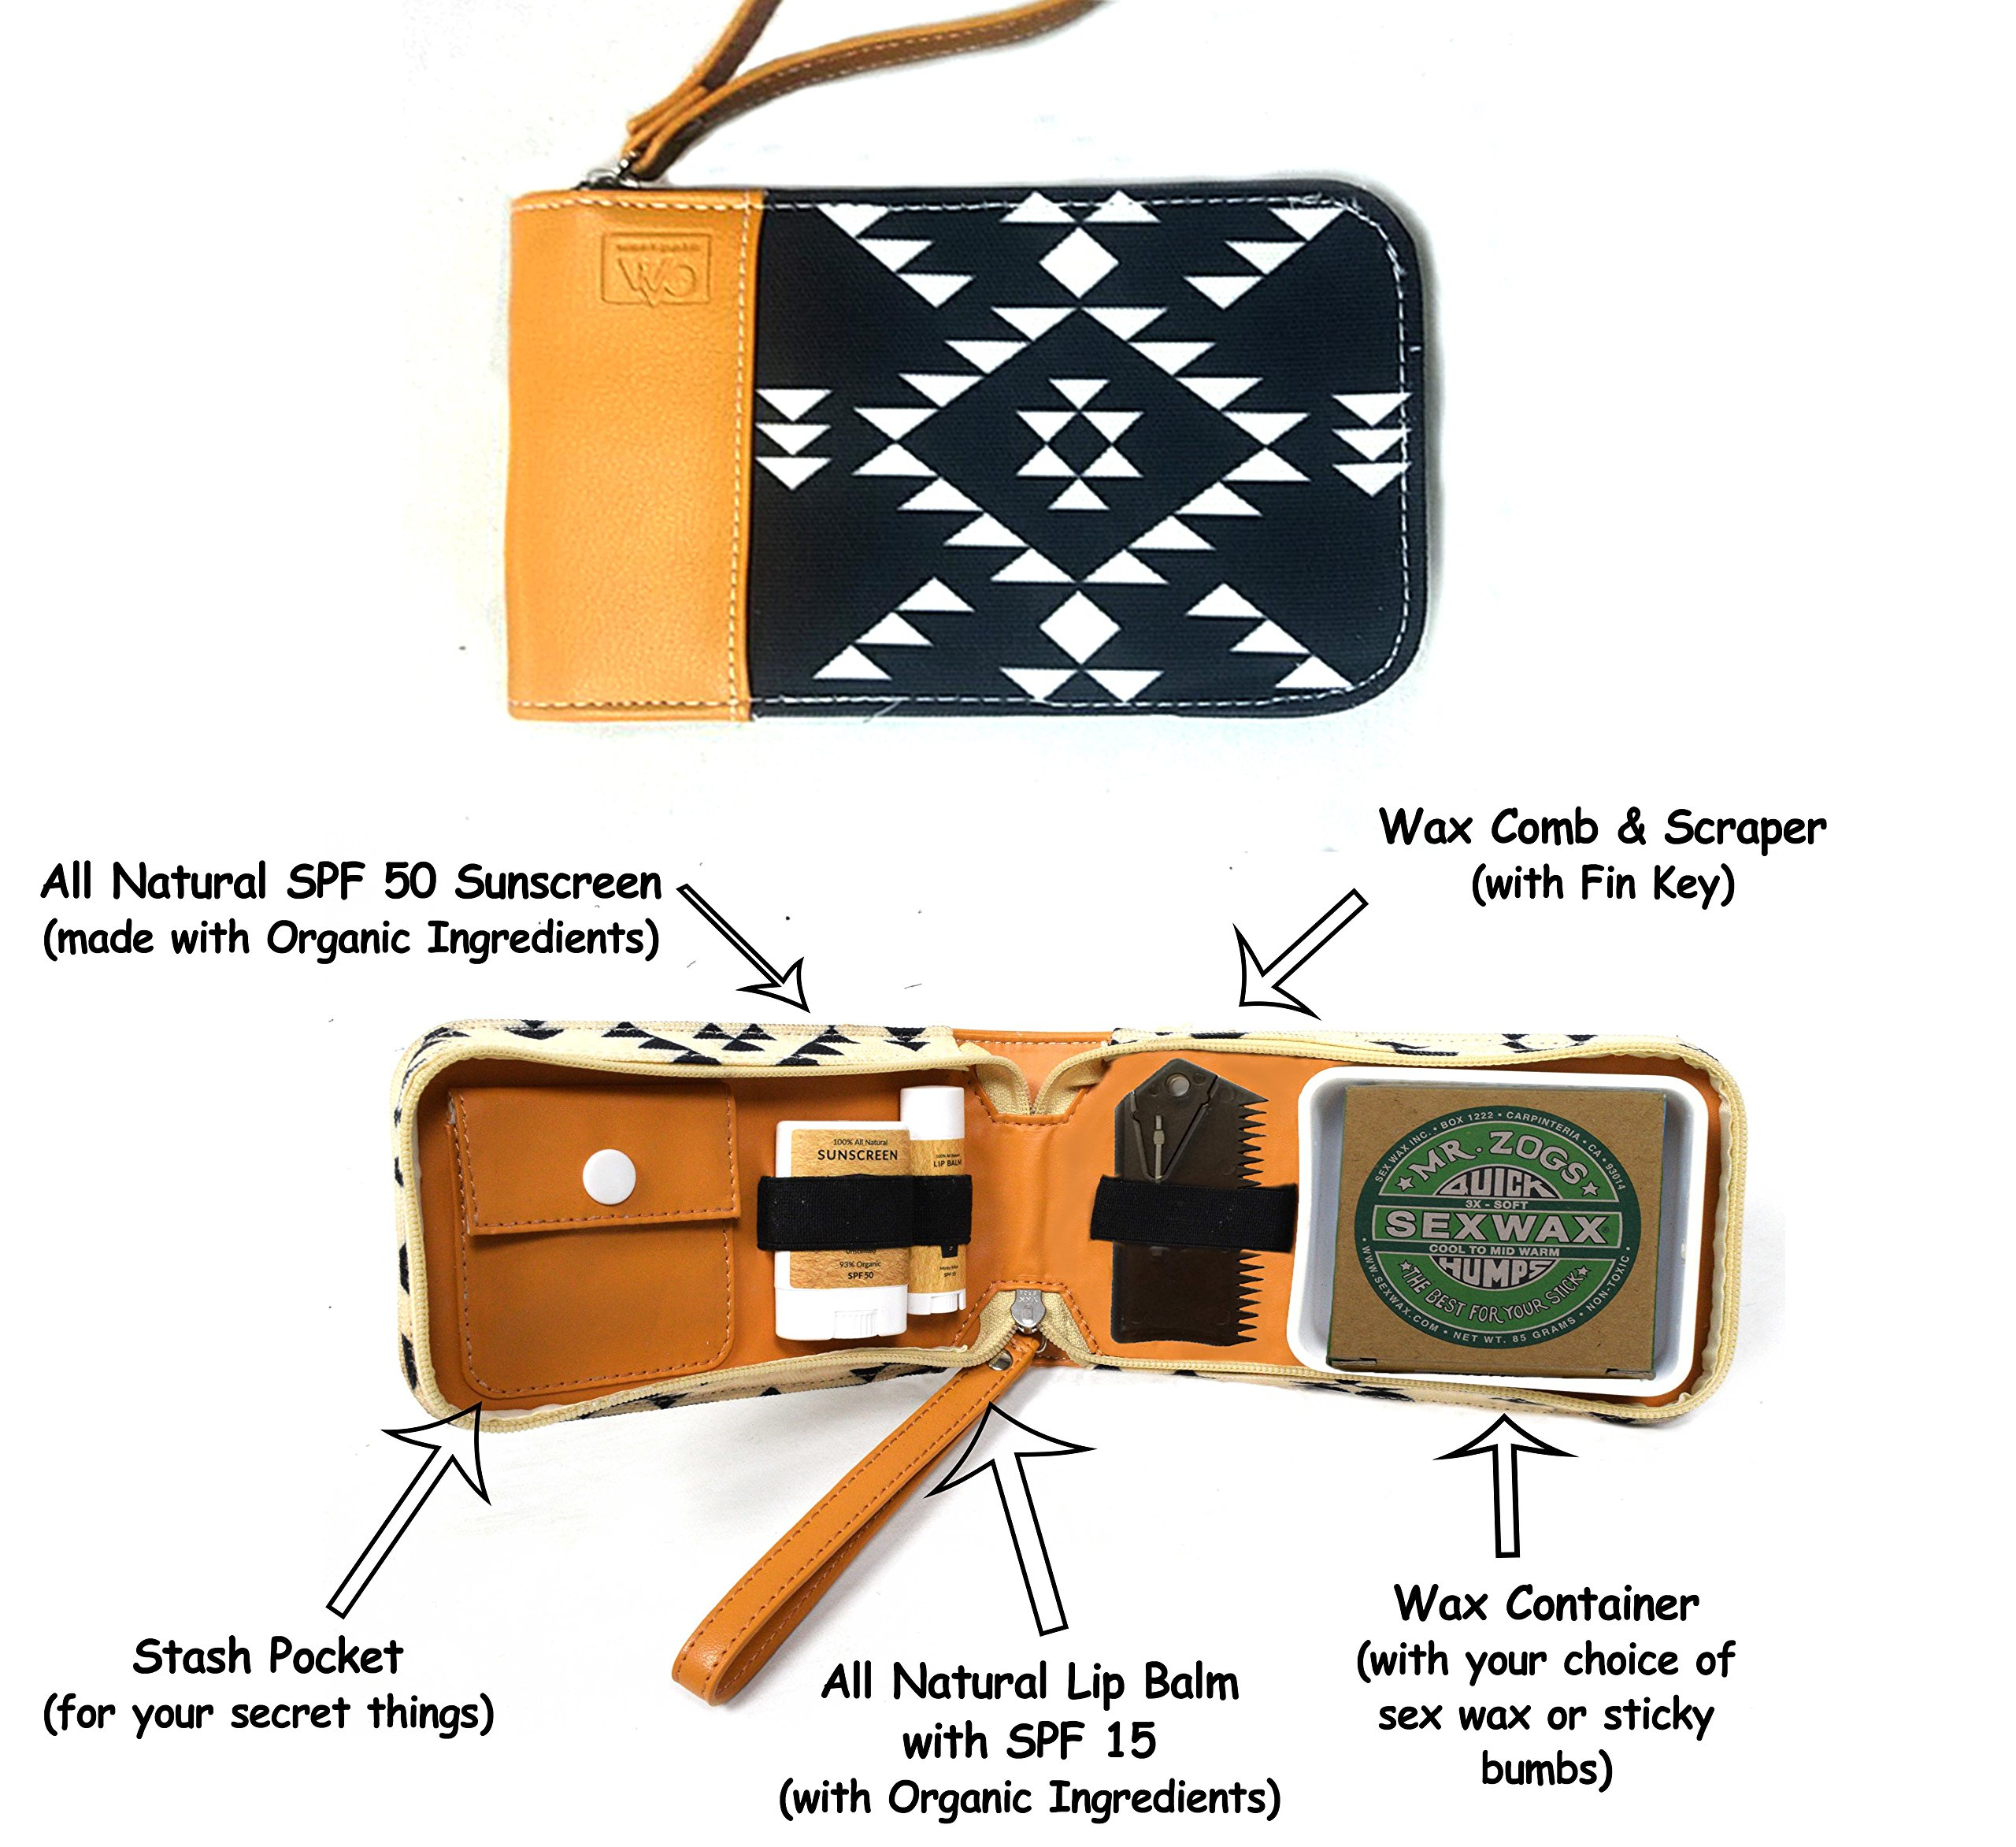 Surf Kit - A Great Surfer Gift & Surf Accessory that Holds your Sex Wax, Organic Sunscreen Face Stick, All Natural Lip Balm, Wax Scraper, and More! All in a Stylish Aztec Design Surf Wax Holder!